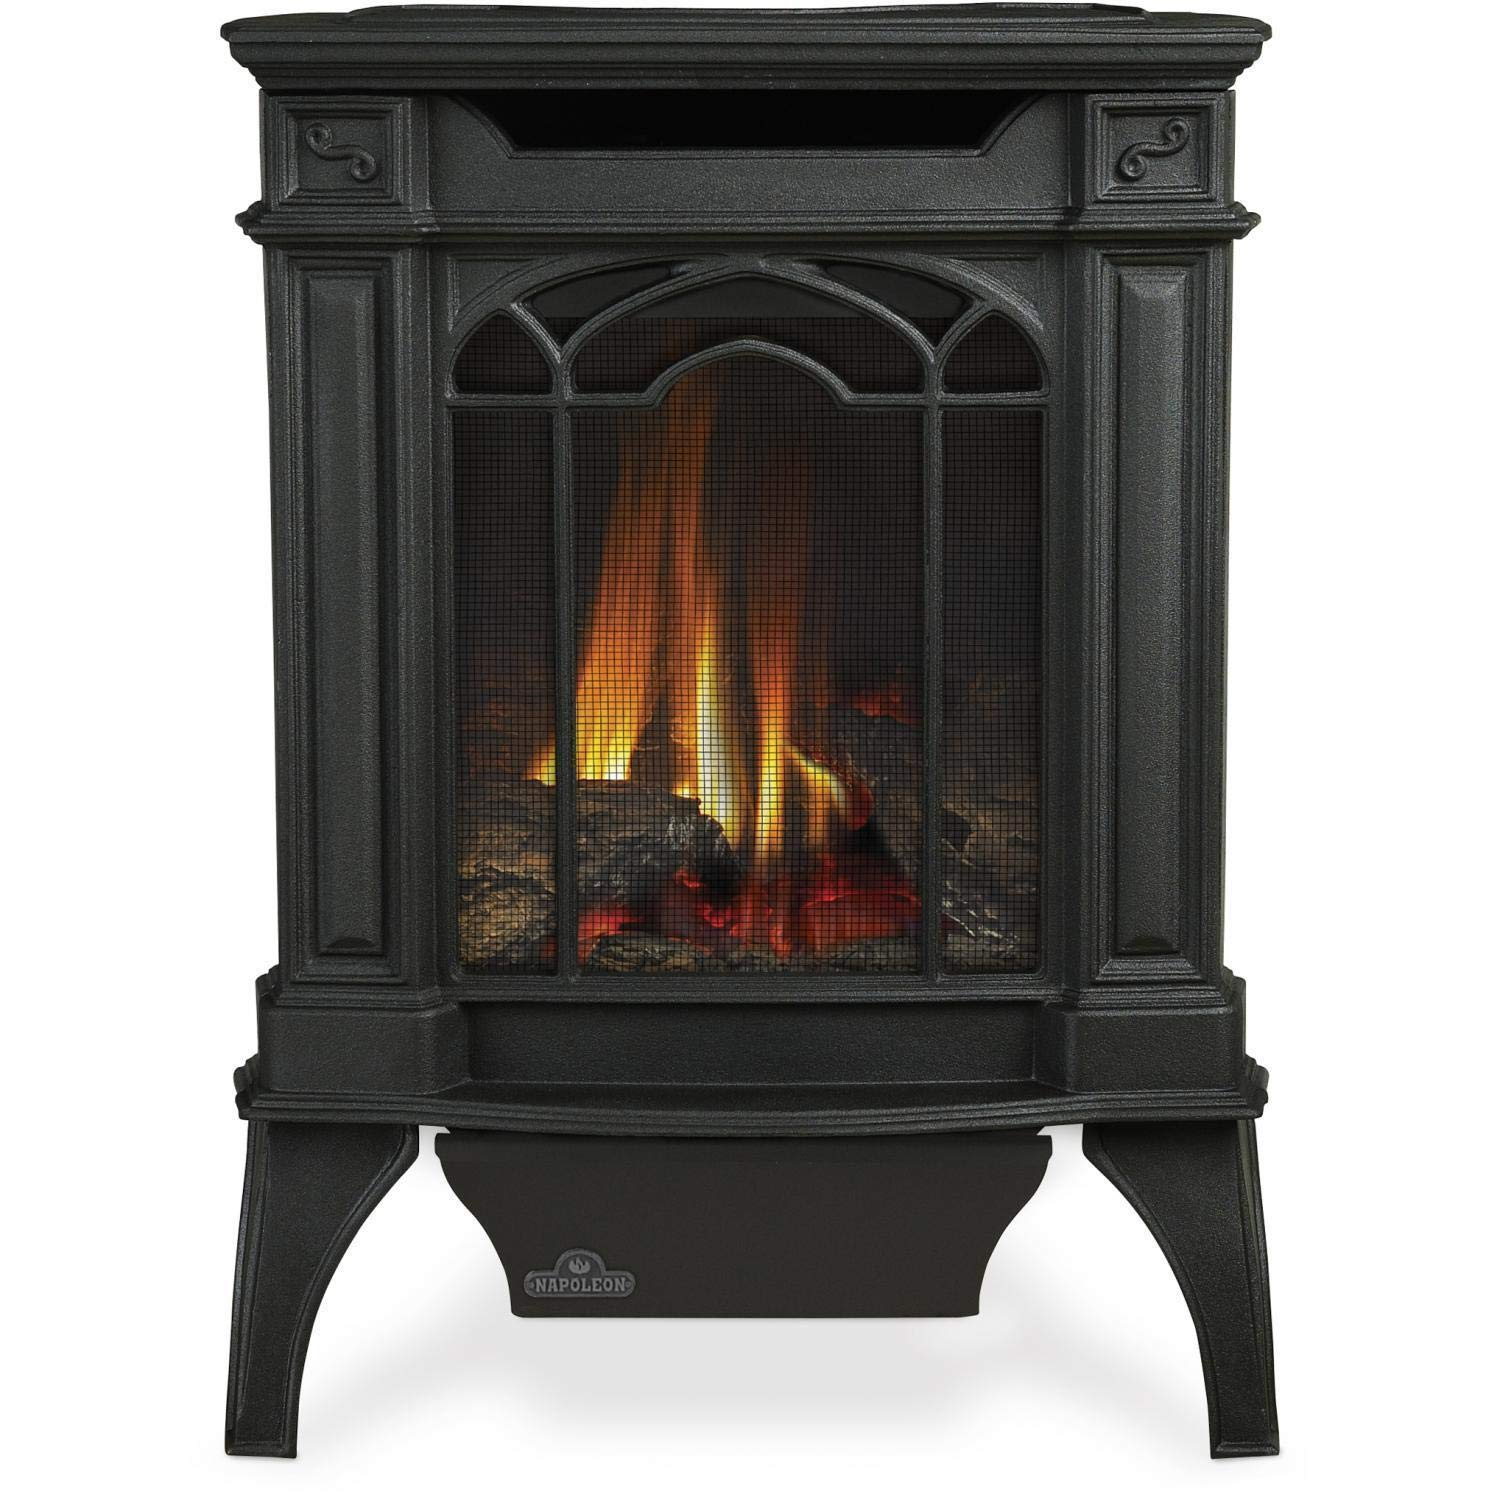 Napoleon GVFS20N Fireplace, Arlington Natural Gas Stove Vent Free 18,000 BTU - Painted Black (Stove Top NOT INCLUDED) by Napoleon